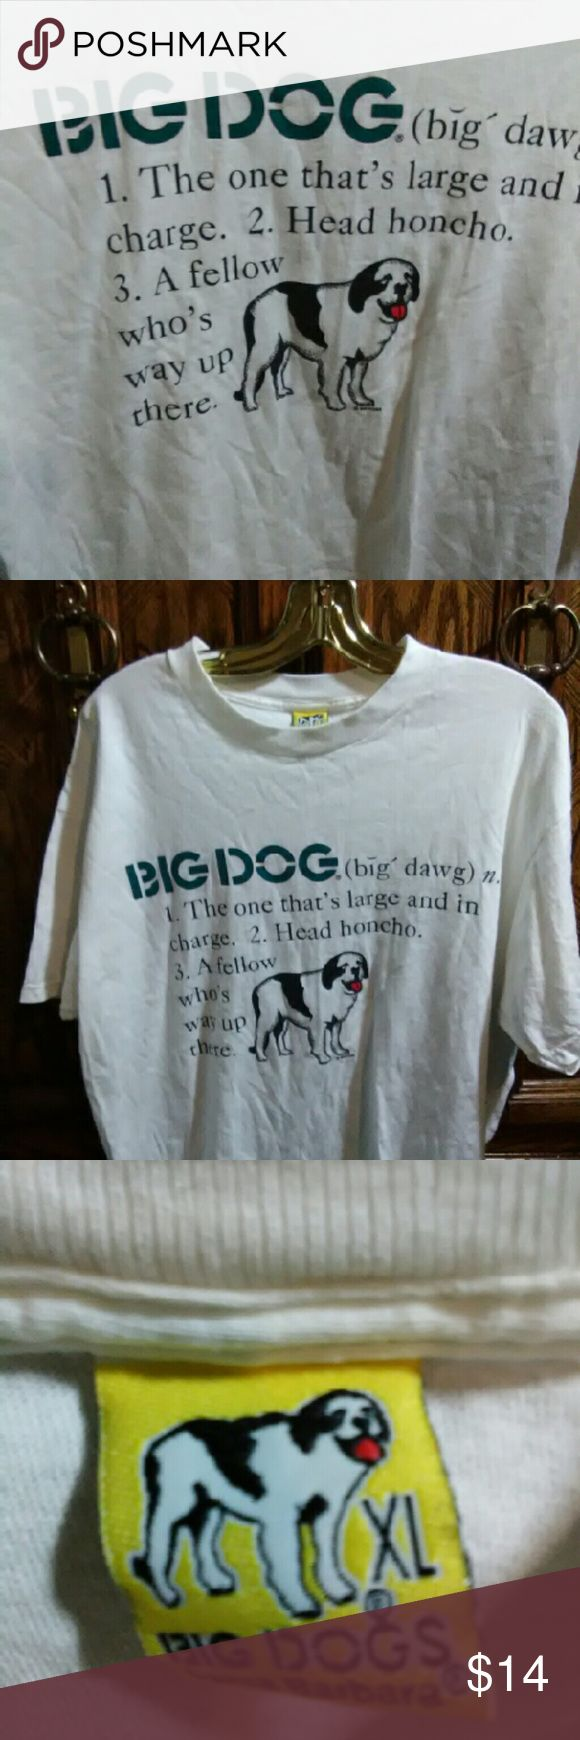 Black dog t shirt ebay - Big Dogs Vintage T Shirt Size Xl No Tags Big Collector Vintage Big